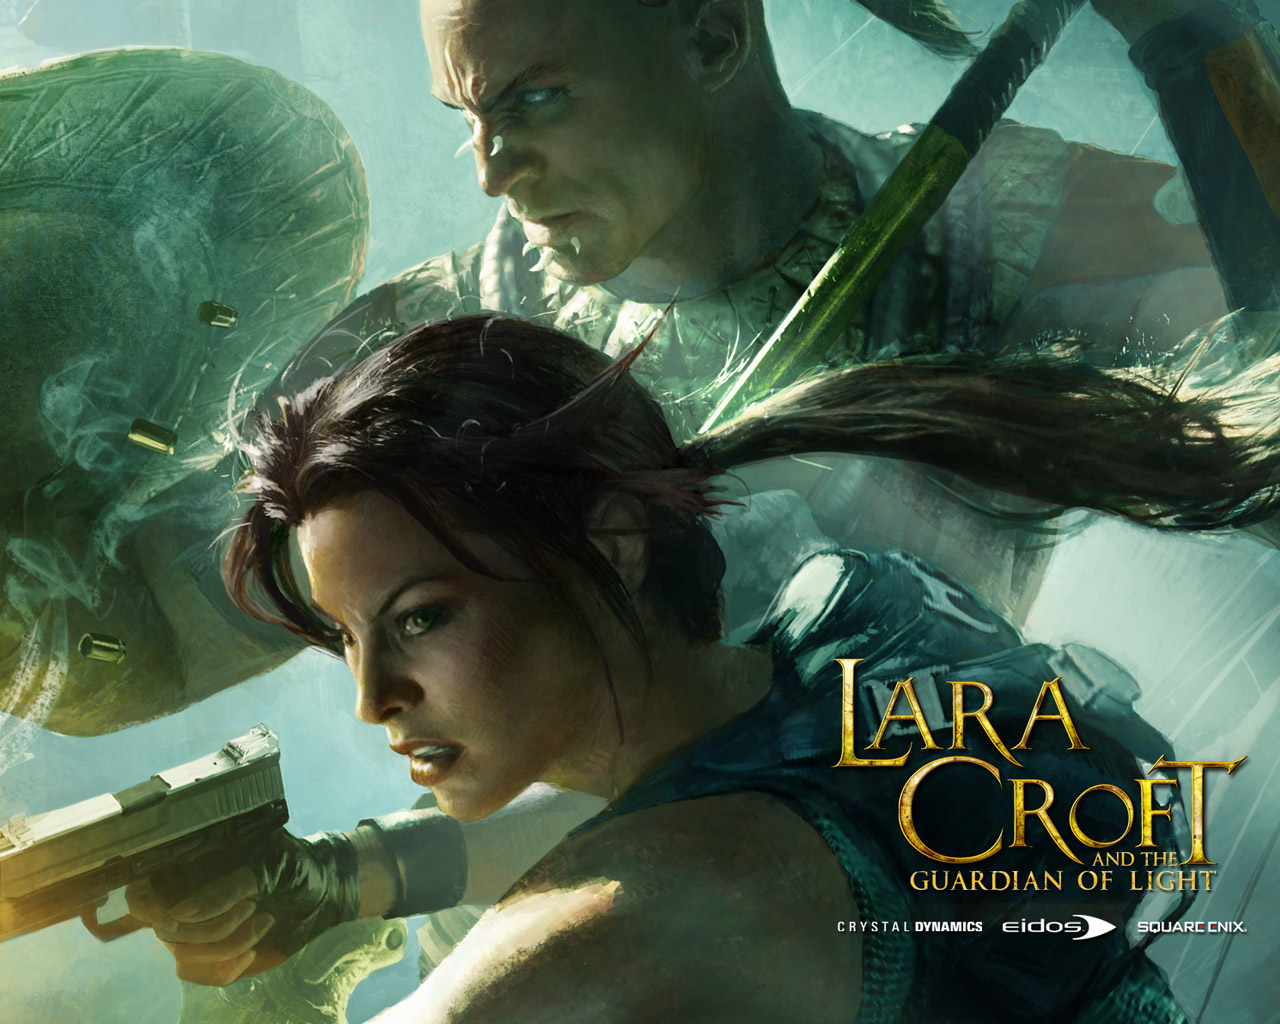 Lara Croft and the Guardian of Light Wallpaper in 1280x1024